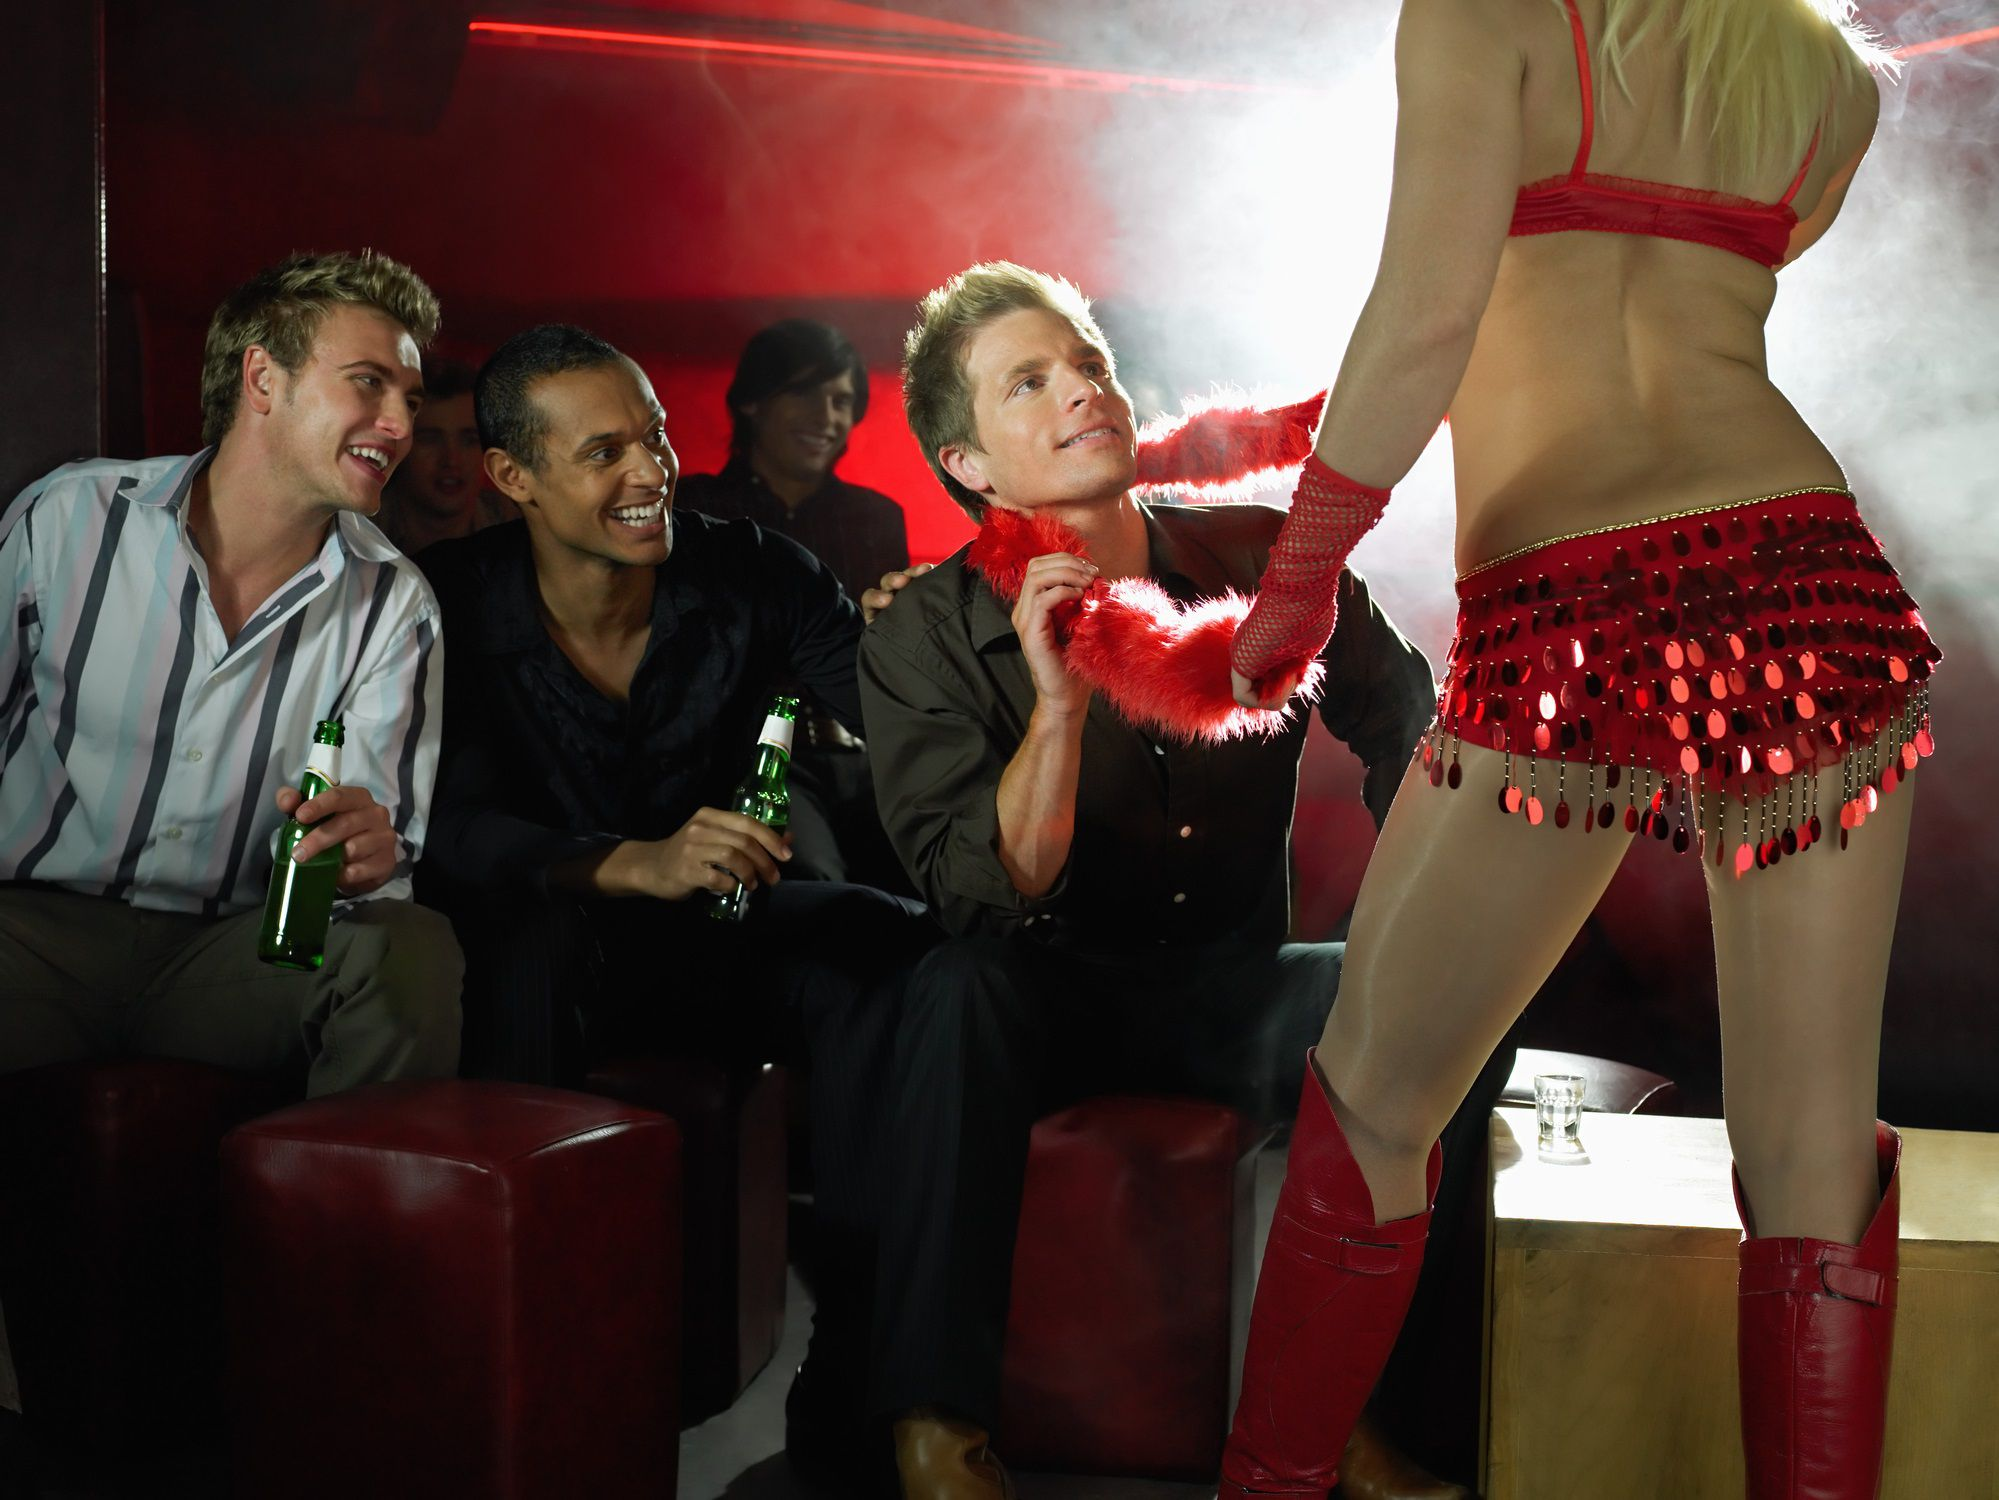 From Strippers To Steakhouses Here Are The Best Bachelor Party Ideas